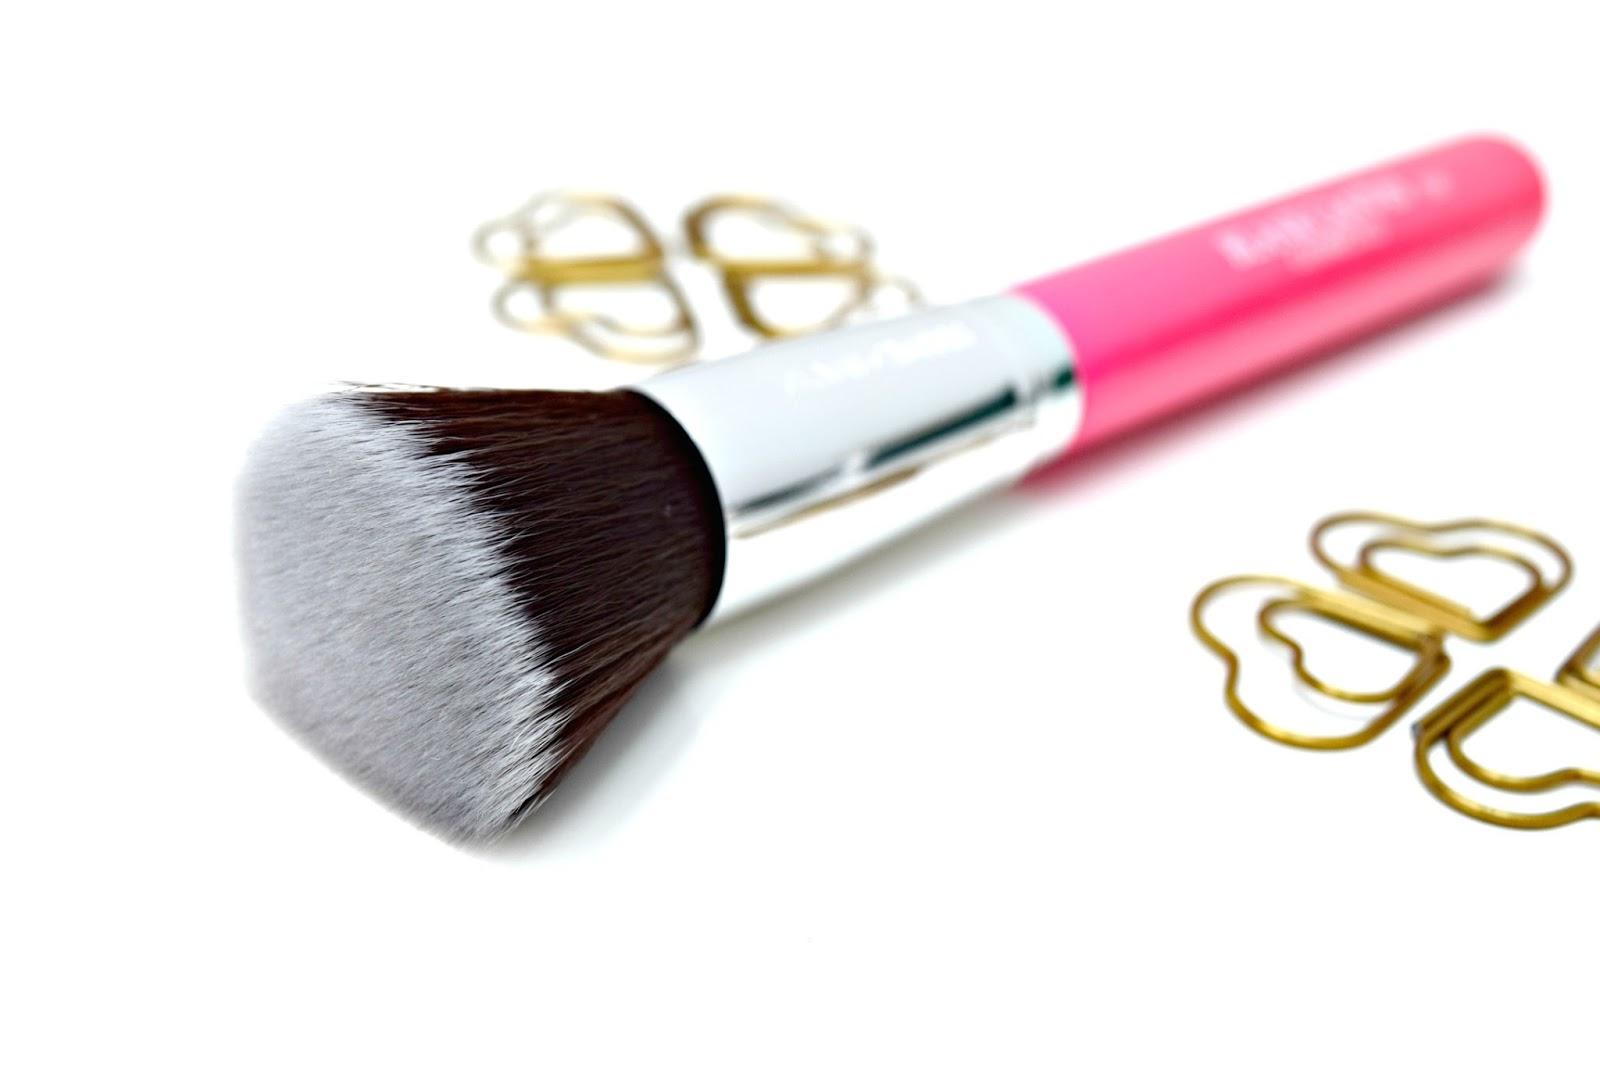 Blank Canvas F20 Flat Brush Foundation Make Up Brush review